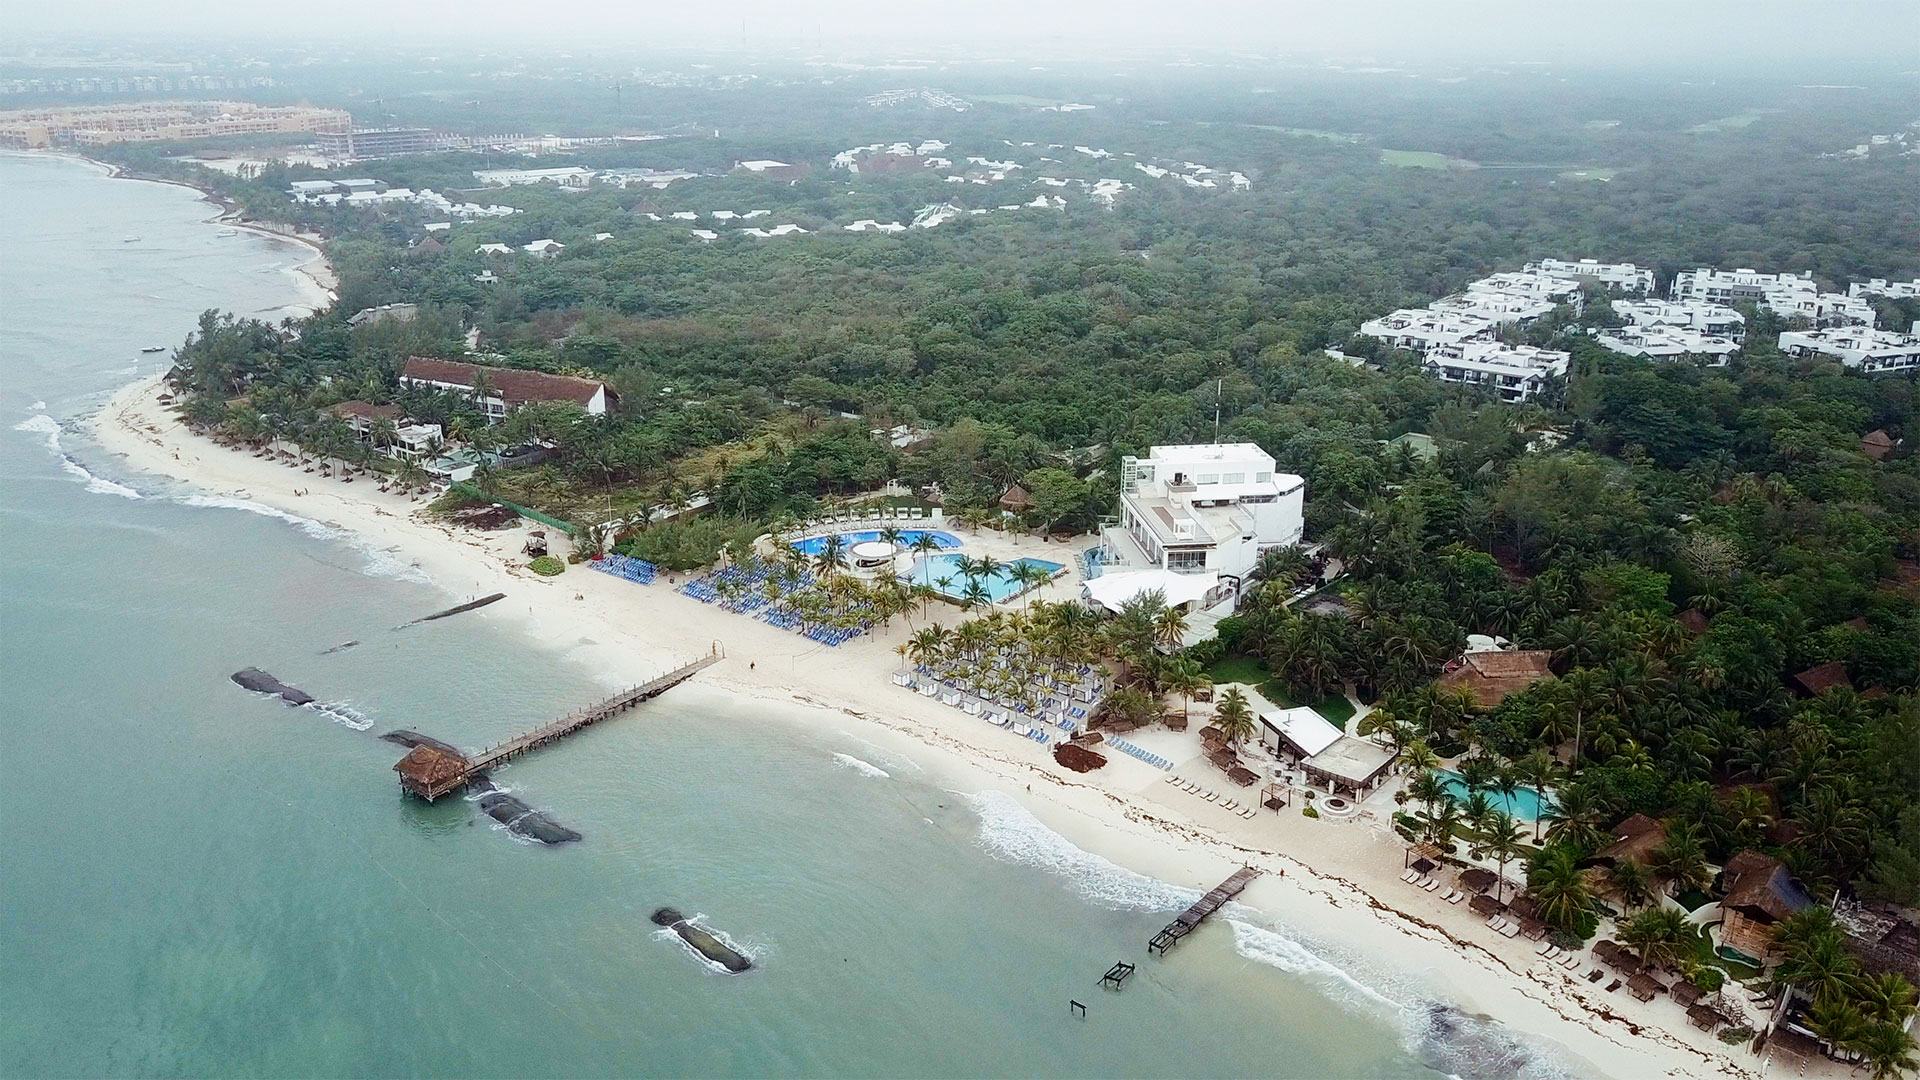 aerial view of Azul fives resort playa del carmen by destination wedding videographer kismet creative